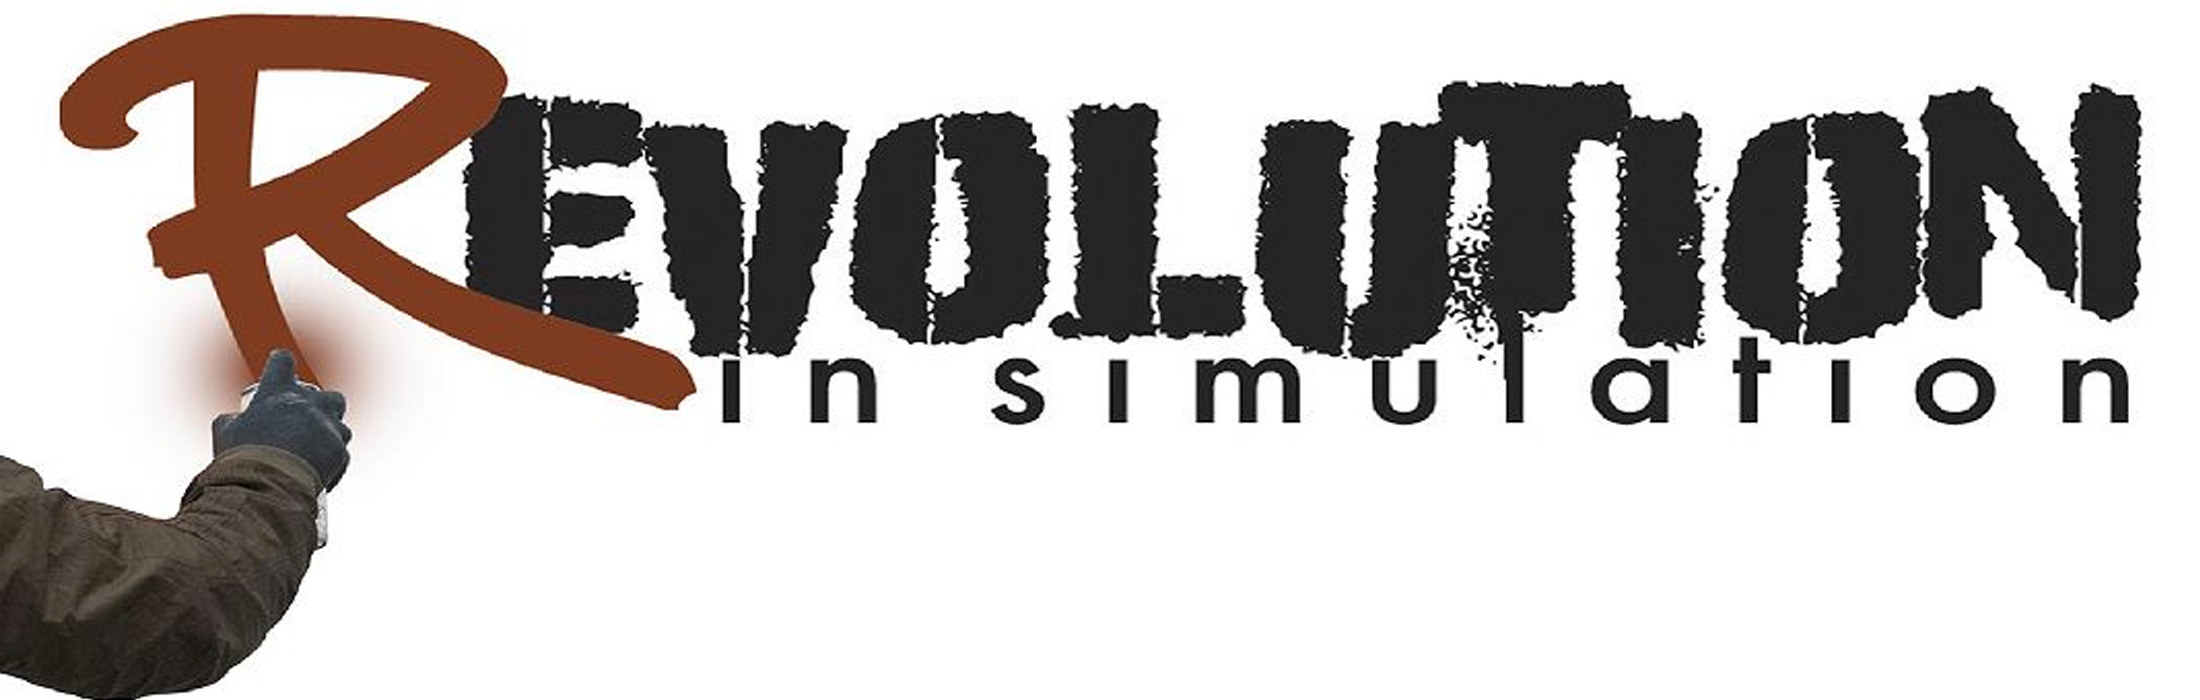 RevolutionInSimulation.org – A New, Public Web Community for the Democratization of Simulation